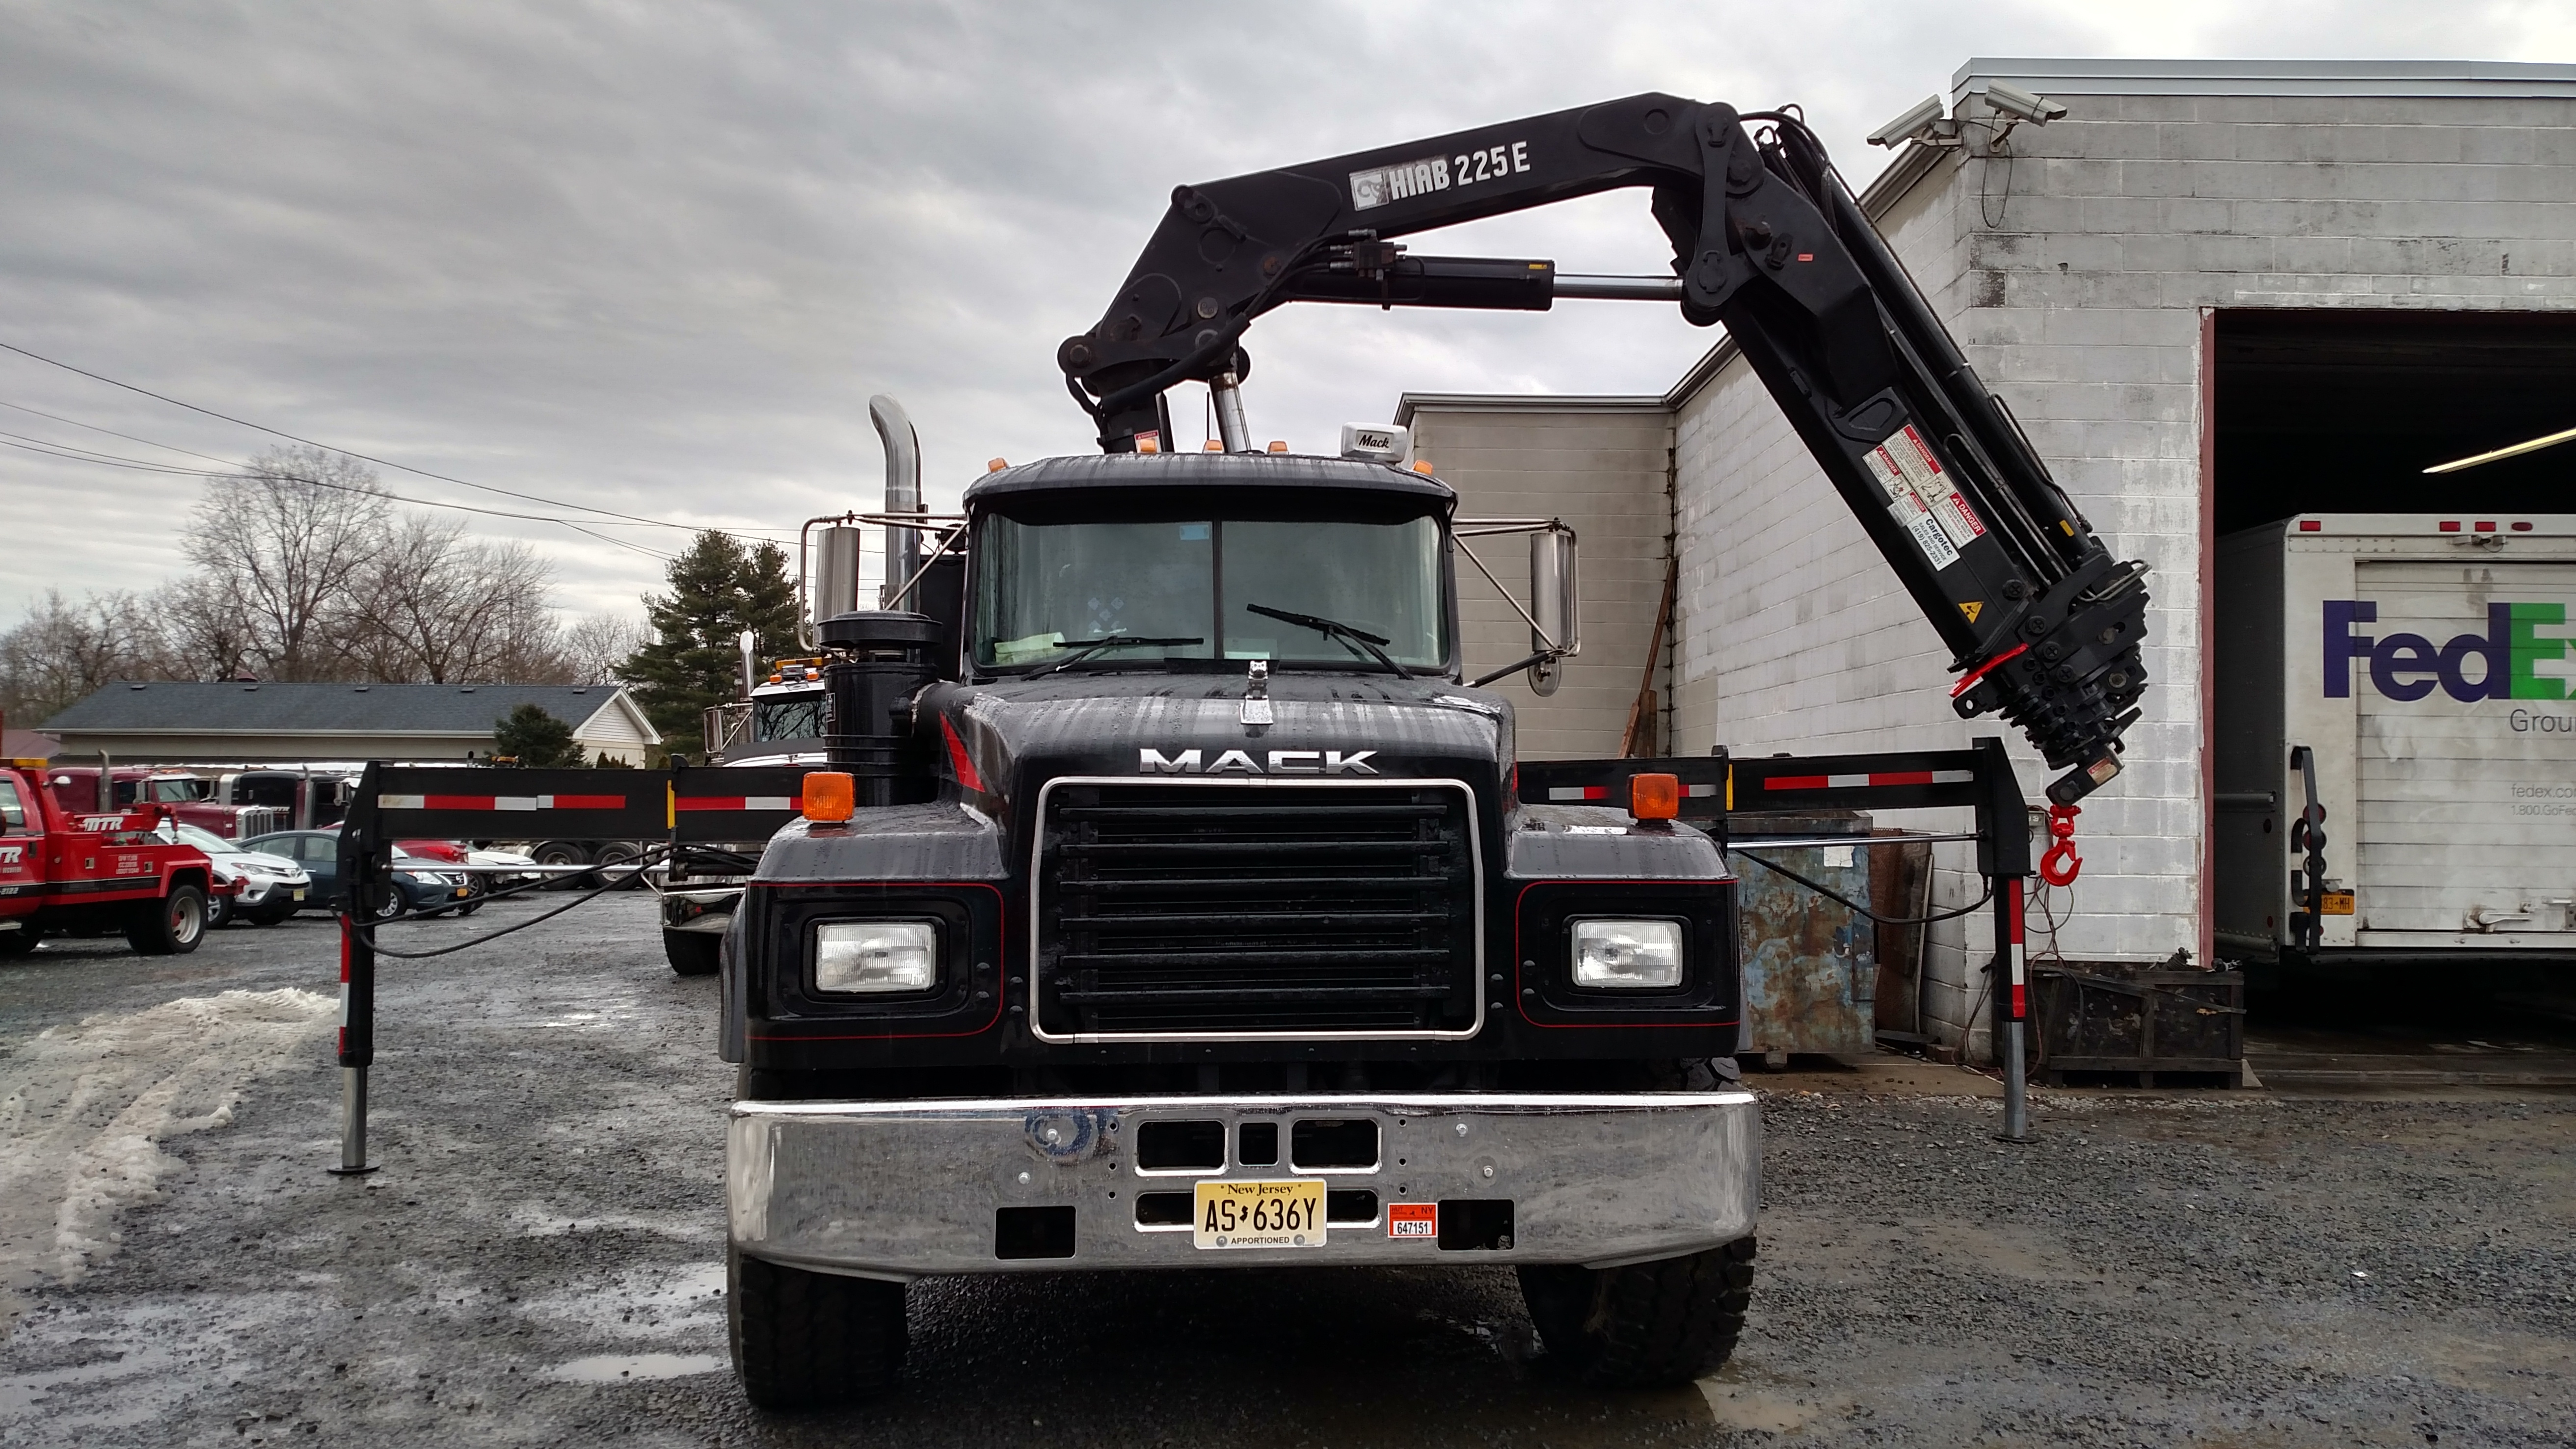 Mike's Towing & Recovery image 2